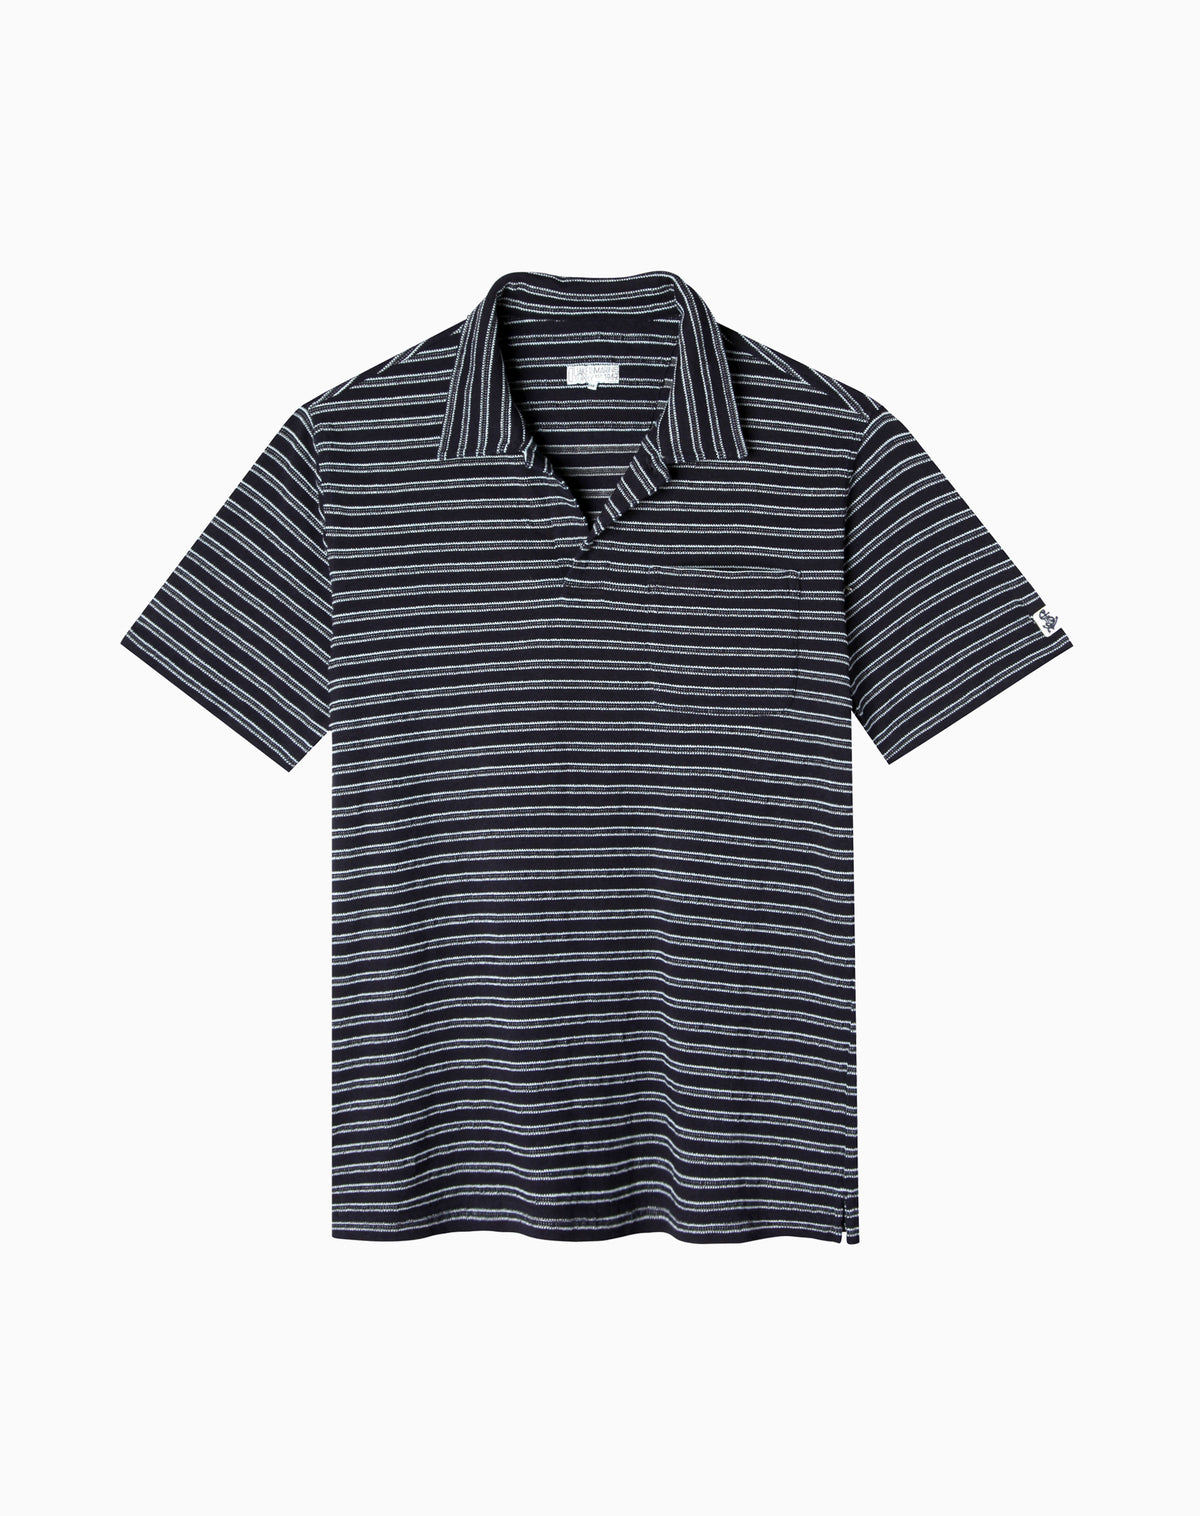 Polo in Jacquard Stripe Dark Wash